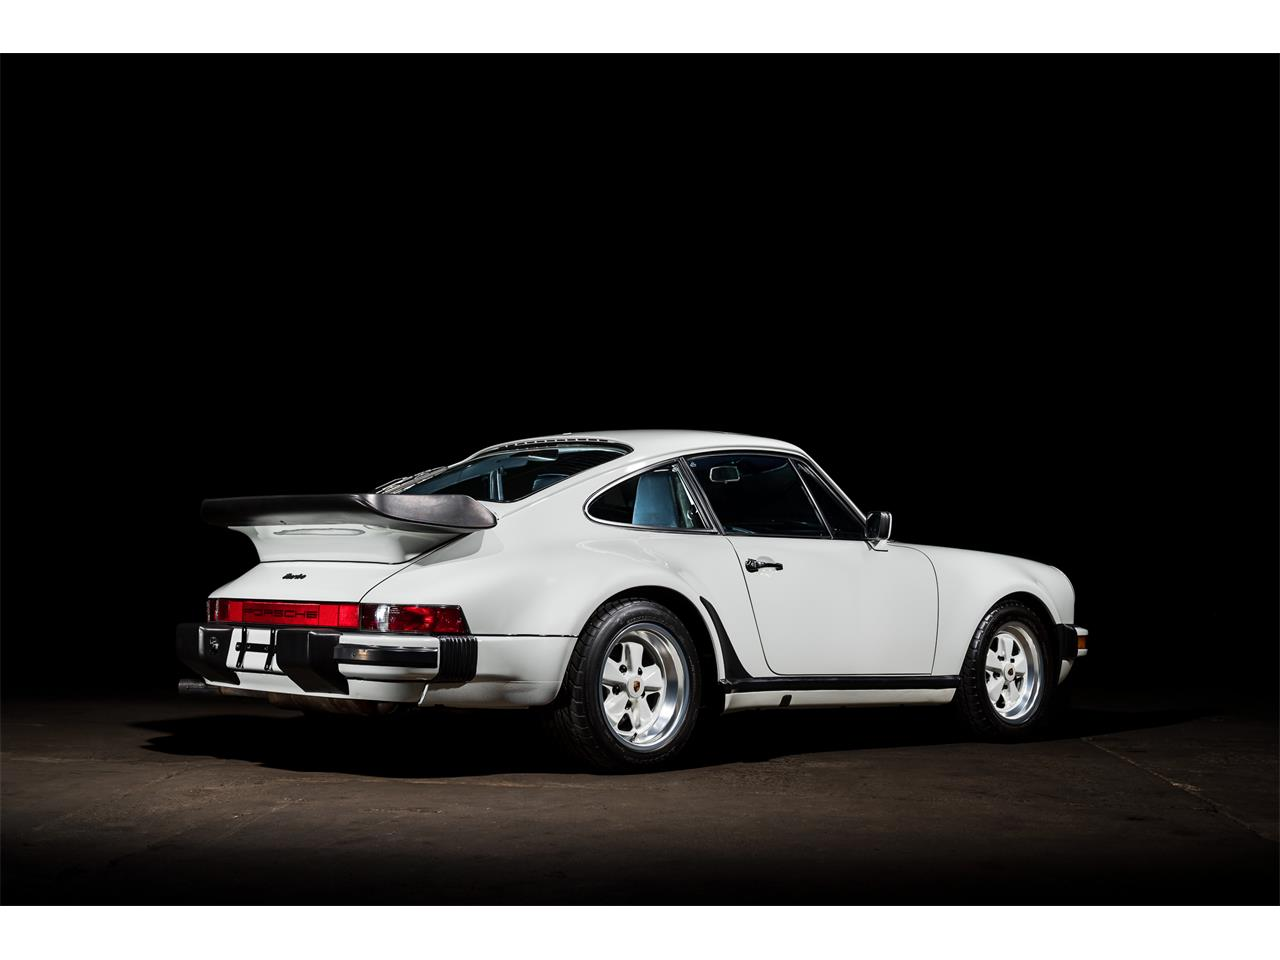 Large Picture of '89 Porsche 930 Turbo located in Pontiac Michigan - $155,000.00 Offered by LBI Limited - QXI9